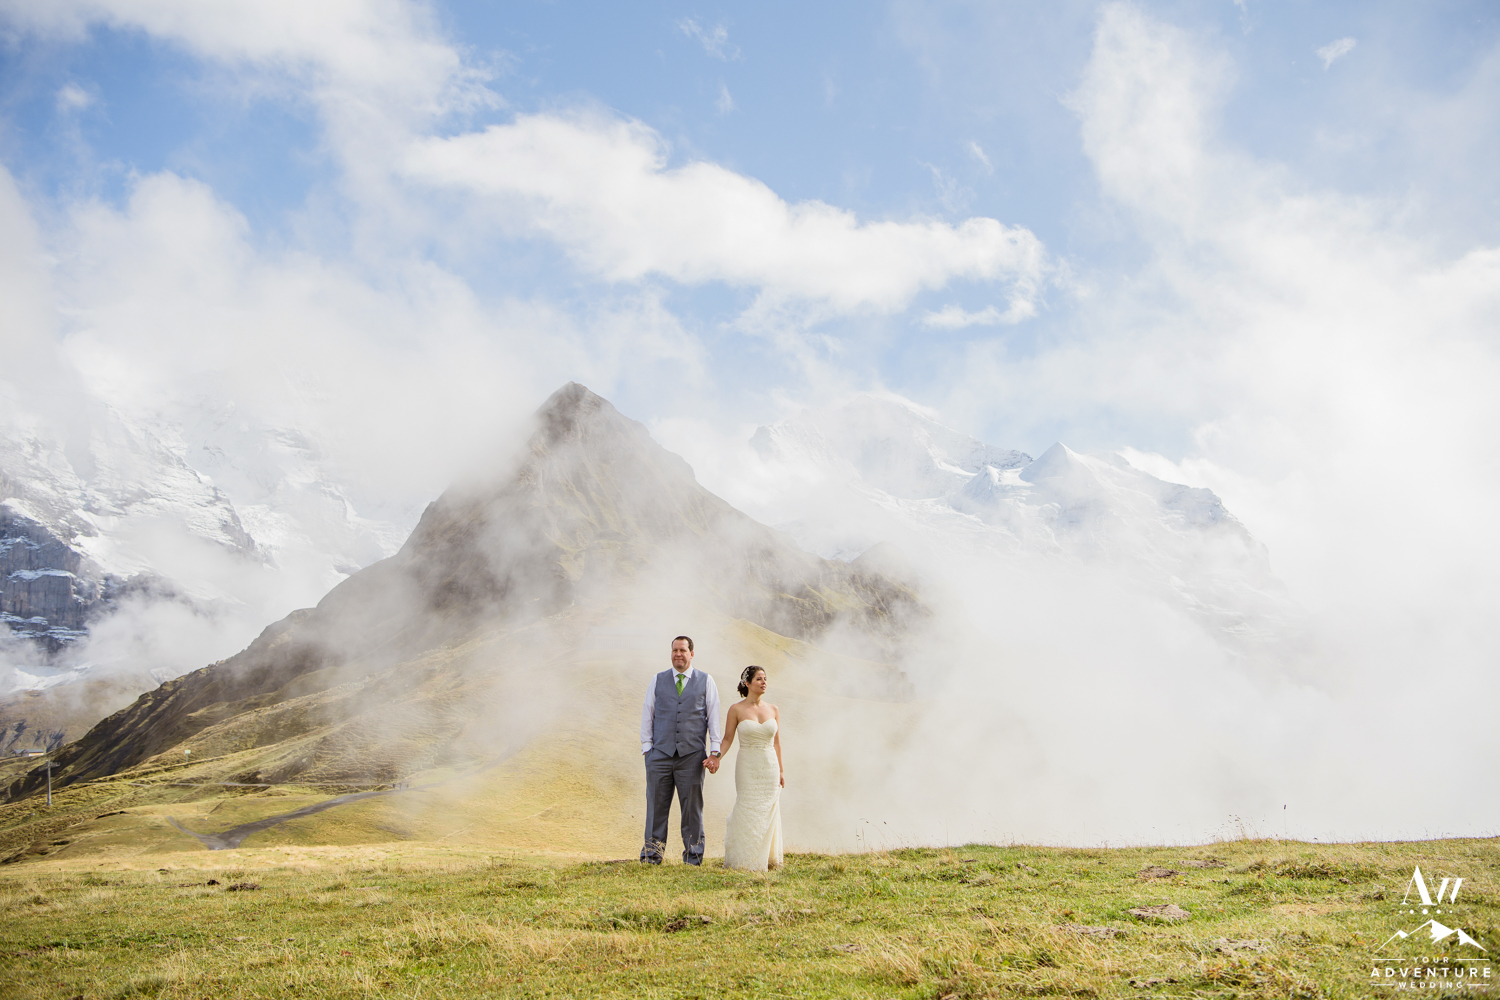 Jungfrau mountain in the background of adventure wedding photos